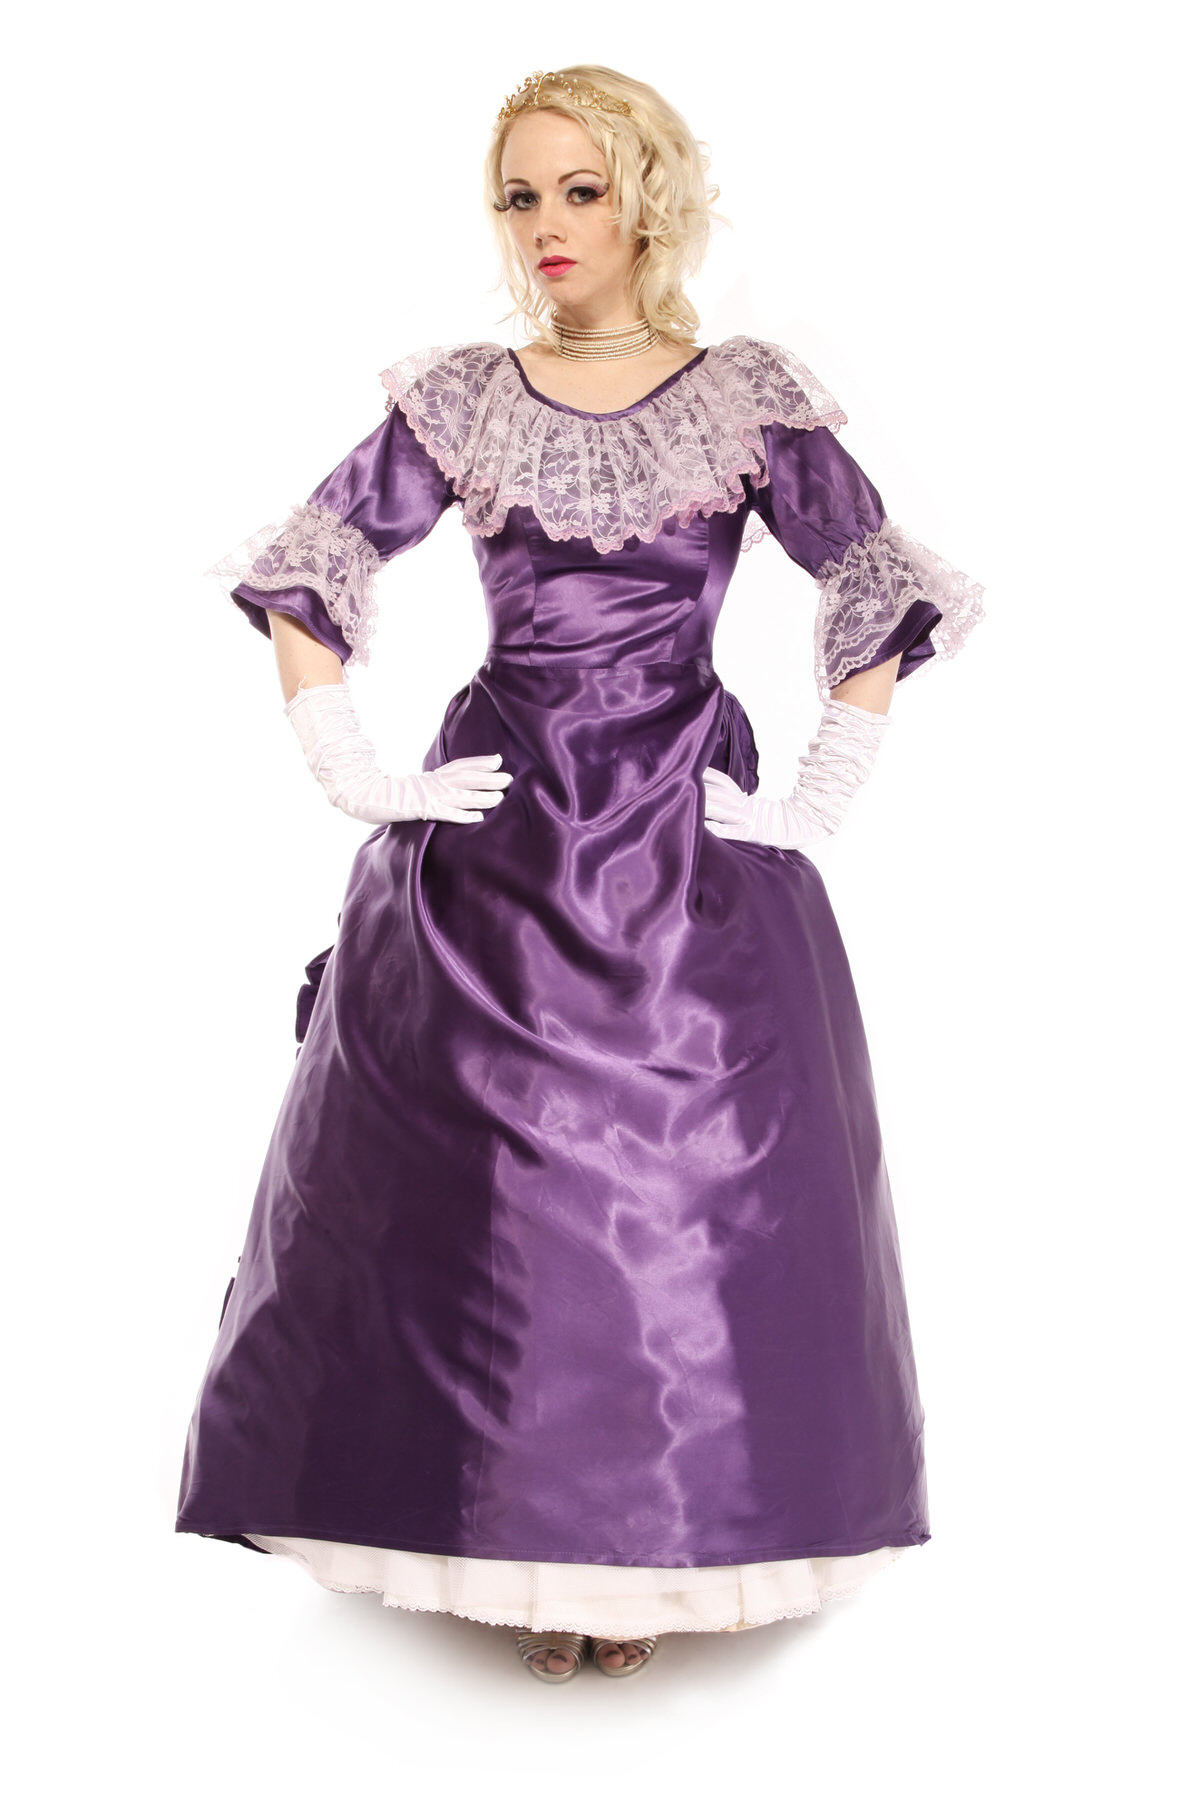 VICTORIAN SATIN GOWN PURPLE COSTUME W FLOWING TRAIN